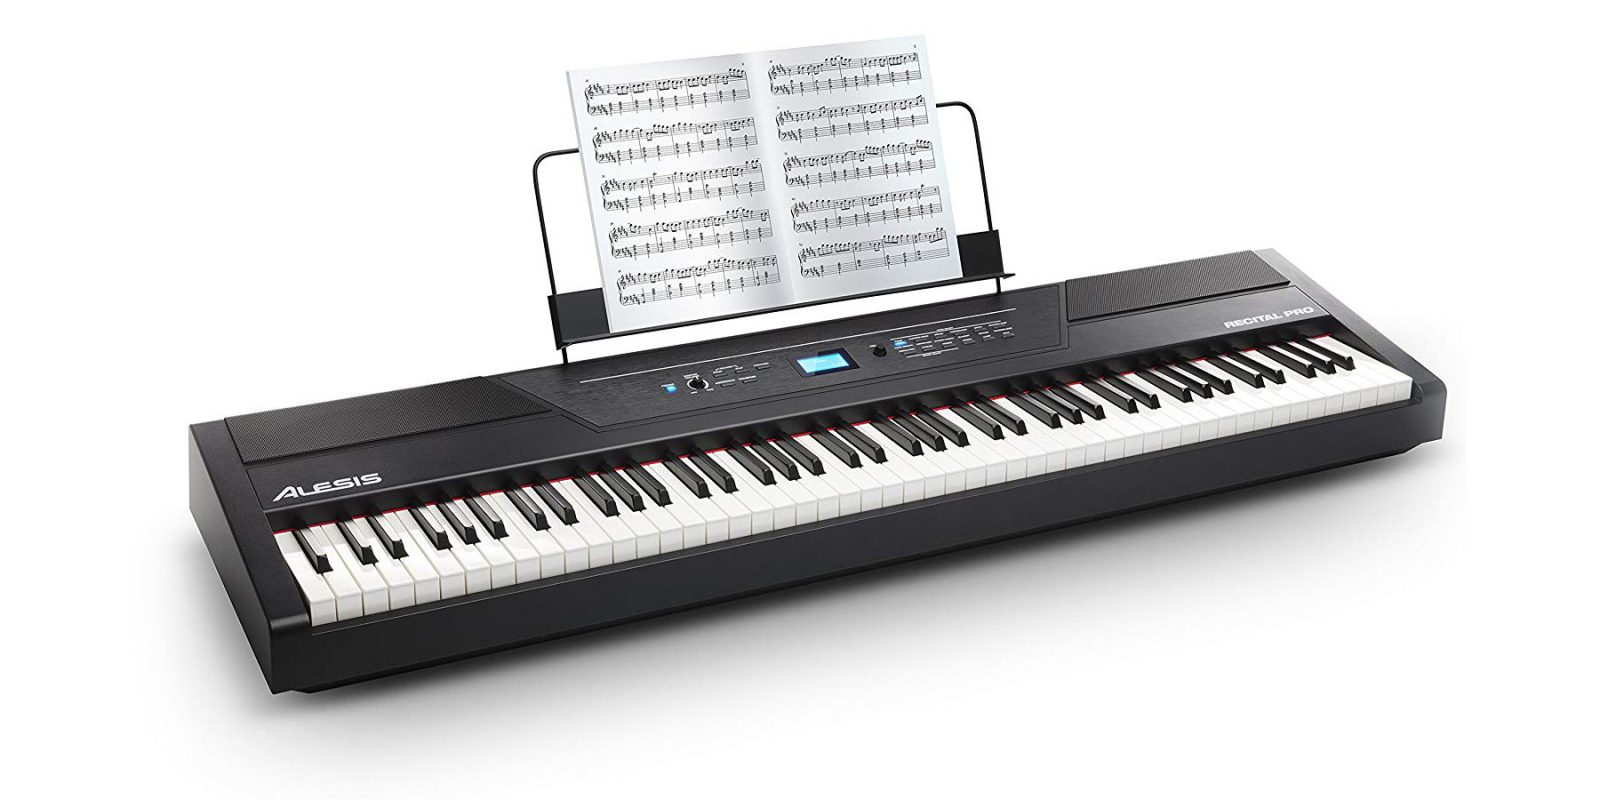 Alesis Recital Pro Digital Piano at $249 ($100 off) + more